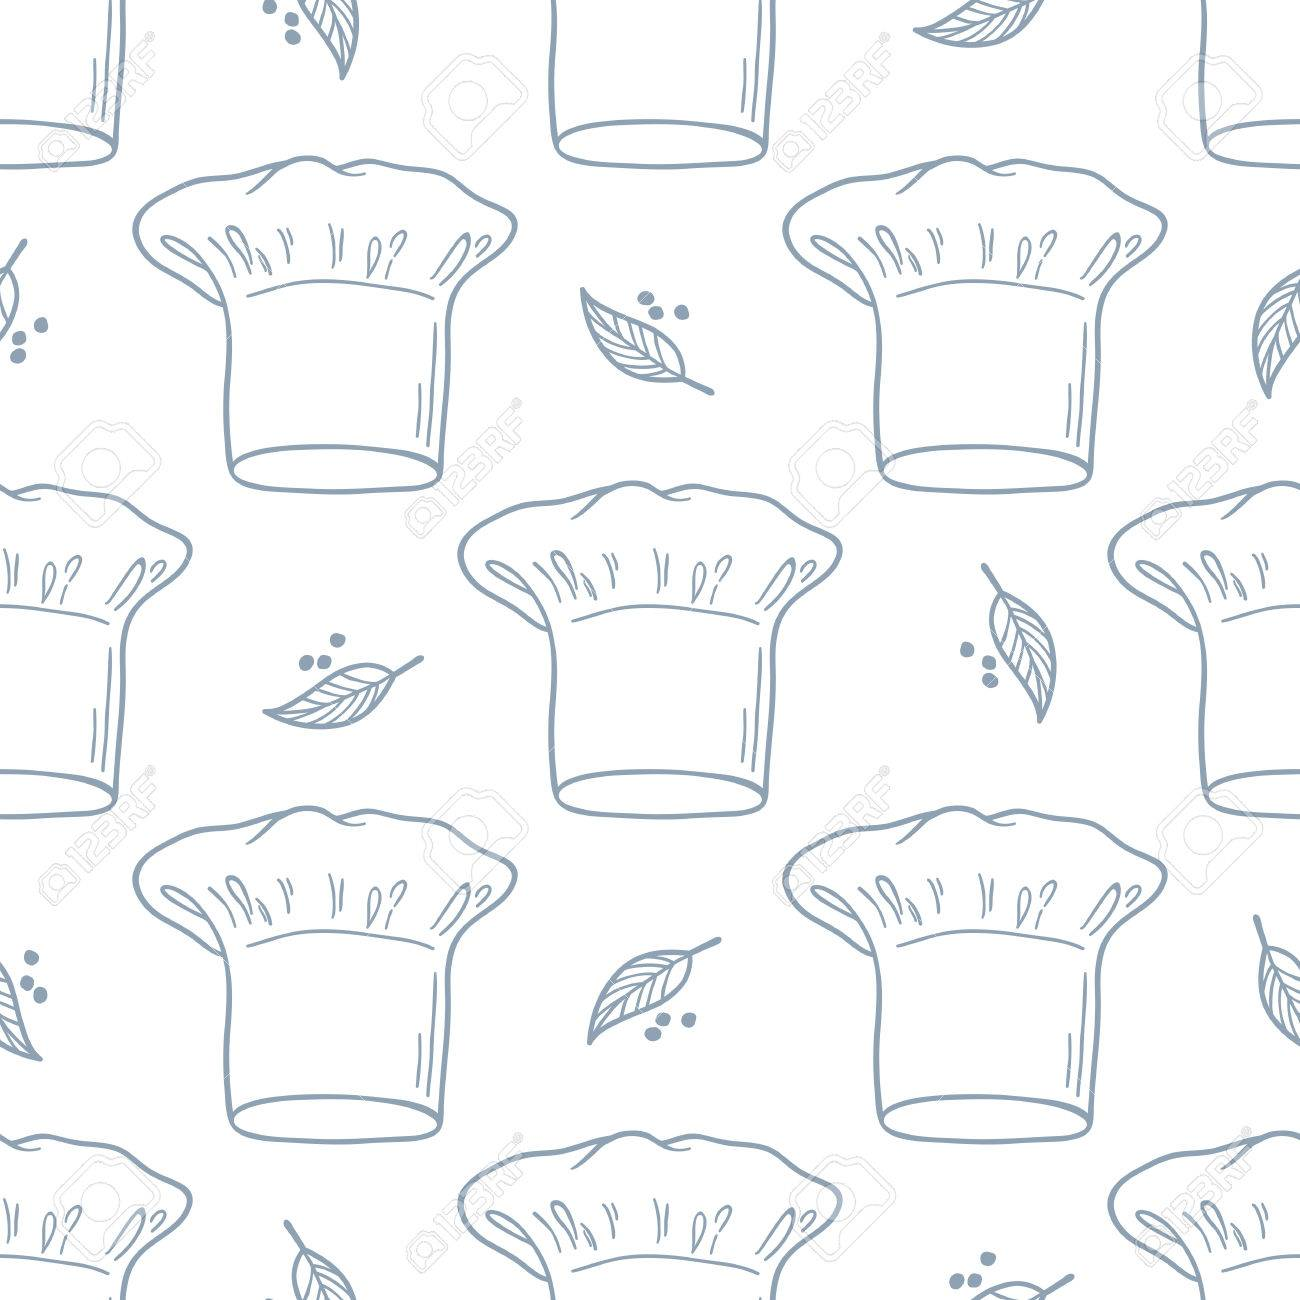 657e8375318 Seamless pattern with hand drawn chef hat. Kitchen background in outline  style. Vector illustration